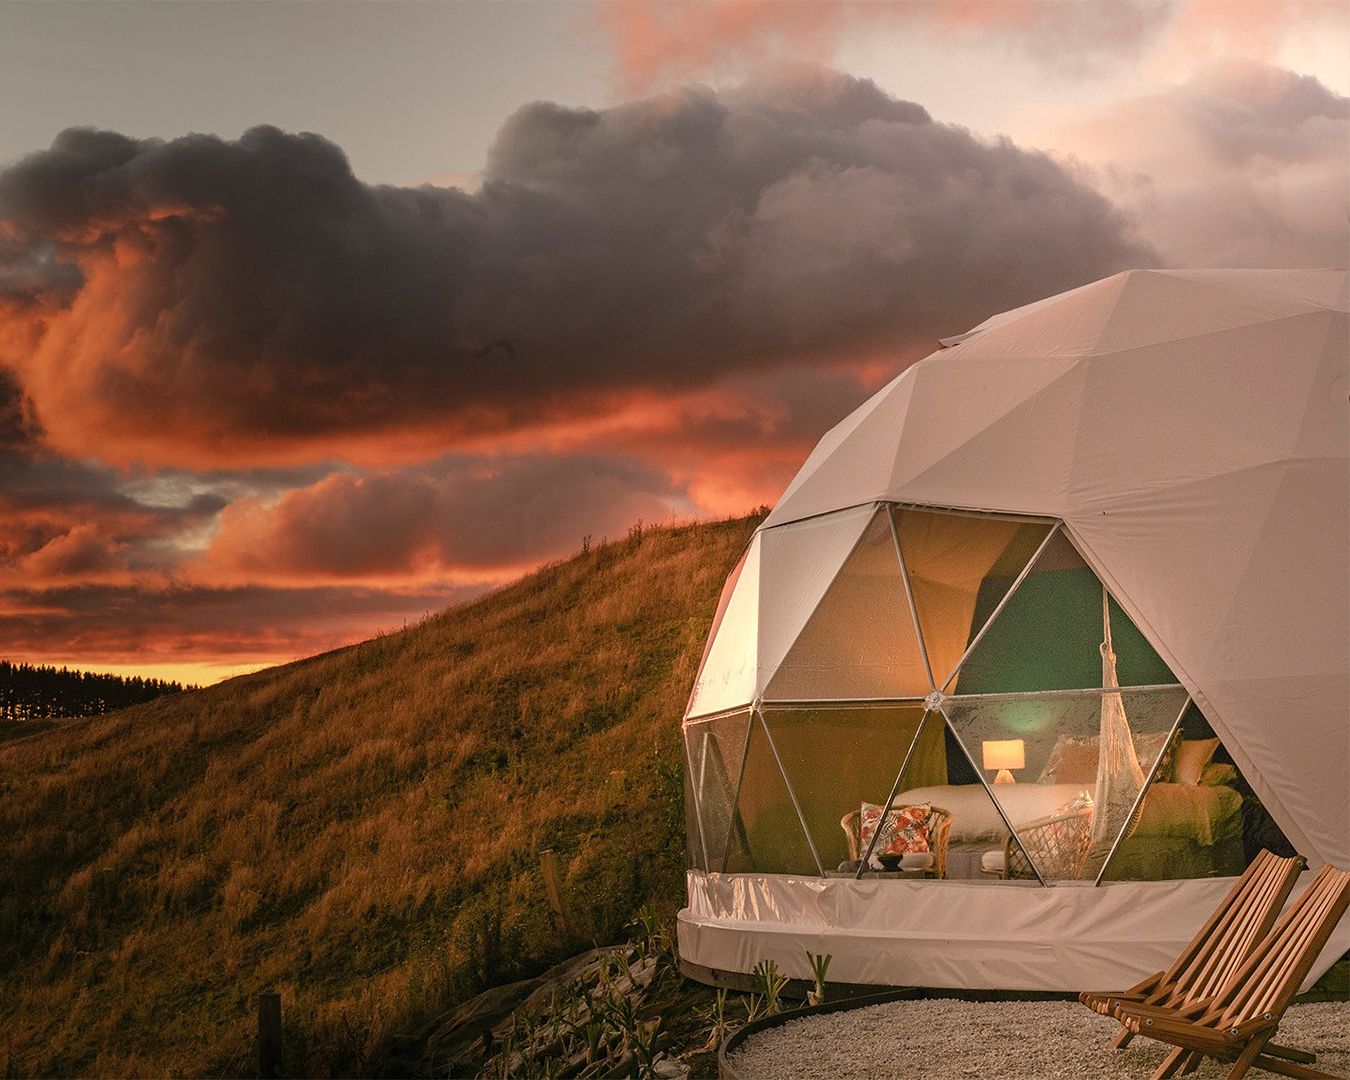 Te Tuhi Dome looks over countryside, looking like the ideal glamping spot.